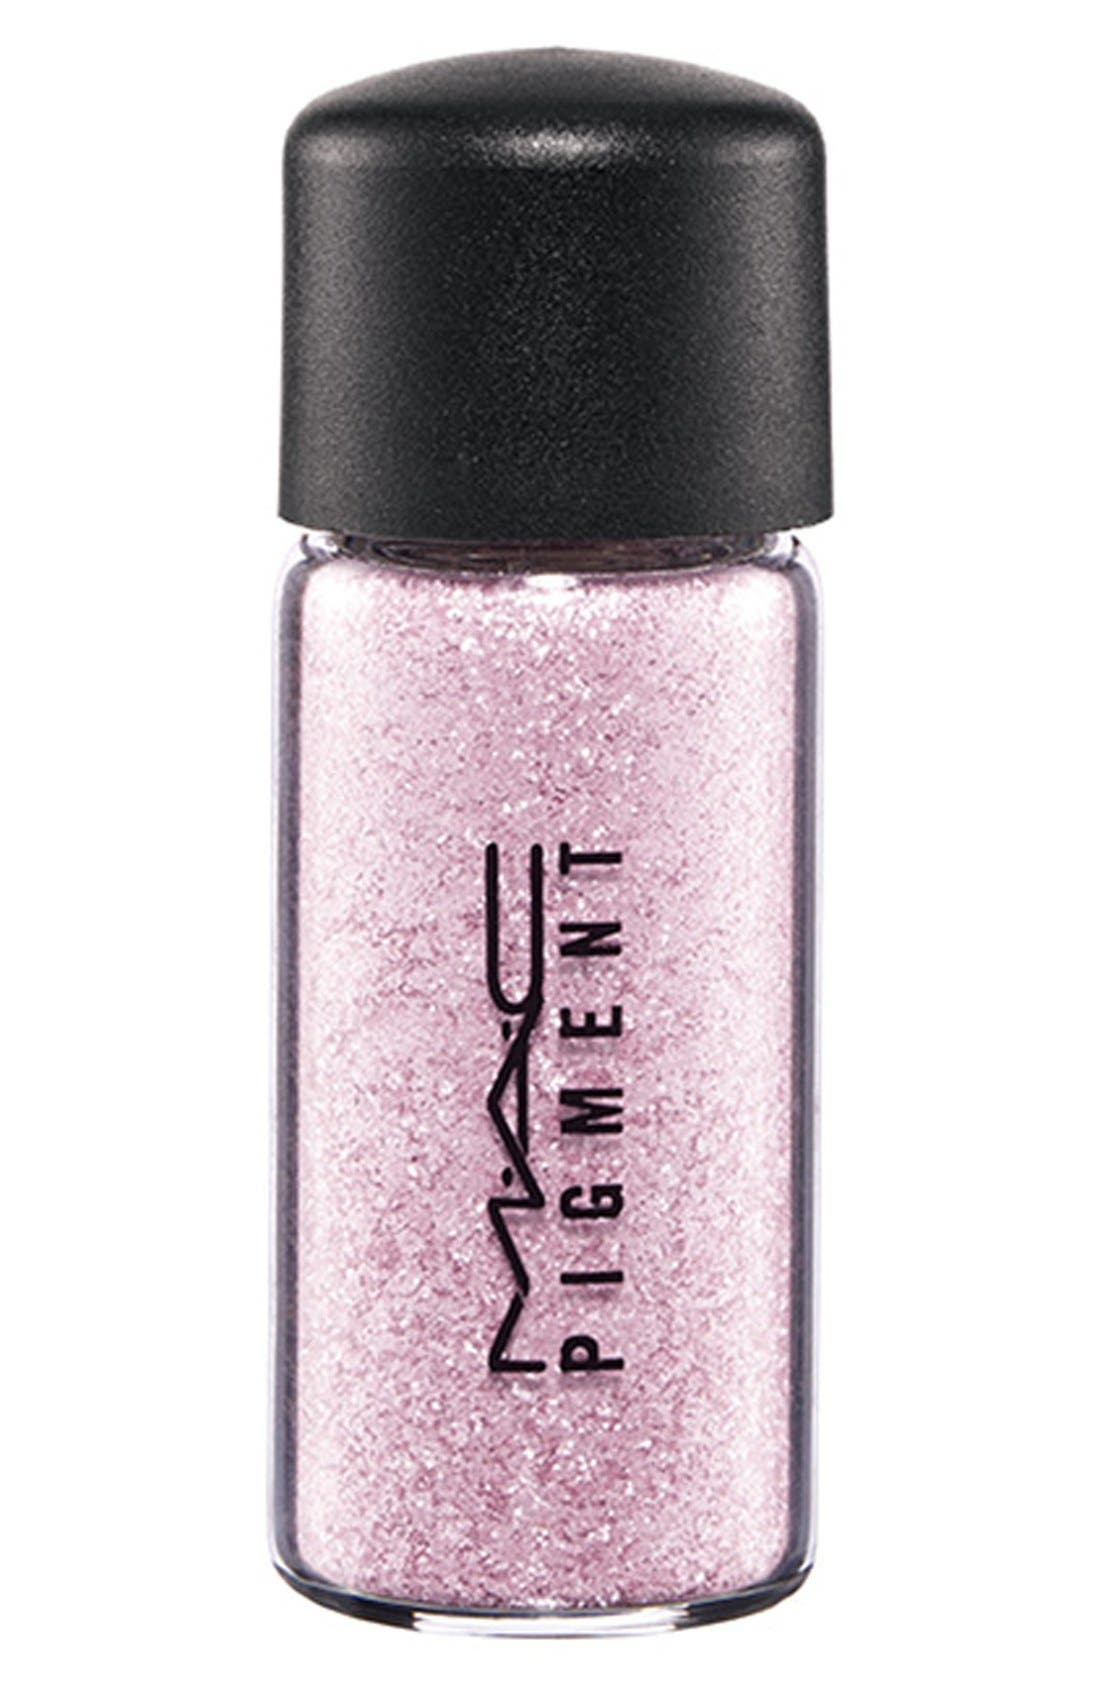 MAC Little MAC Mini Pigment